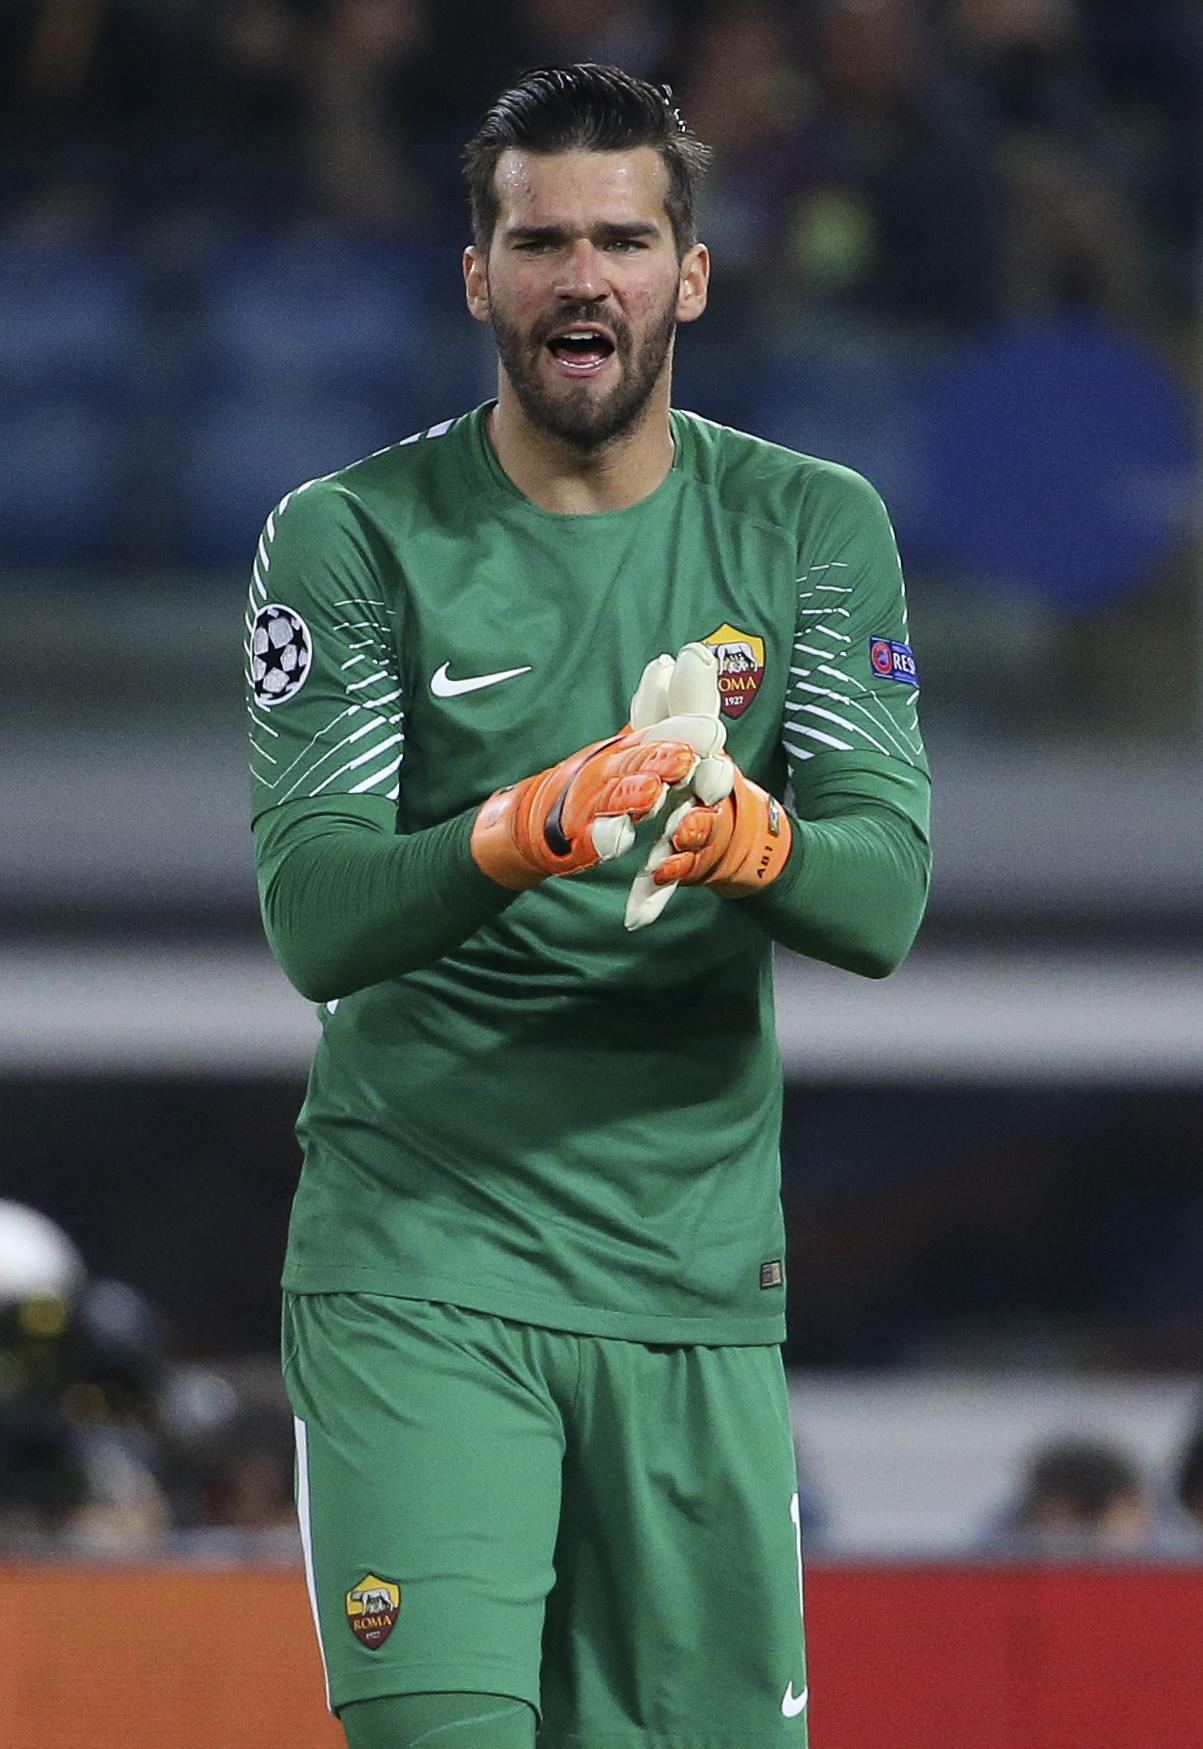 Roma and Brazil keeper Alisson Becker has been beaten to an Anfield move by her namesake - according to her as she trolled Liverpool